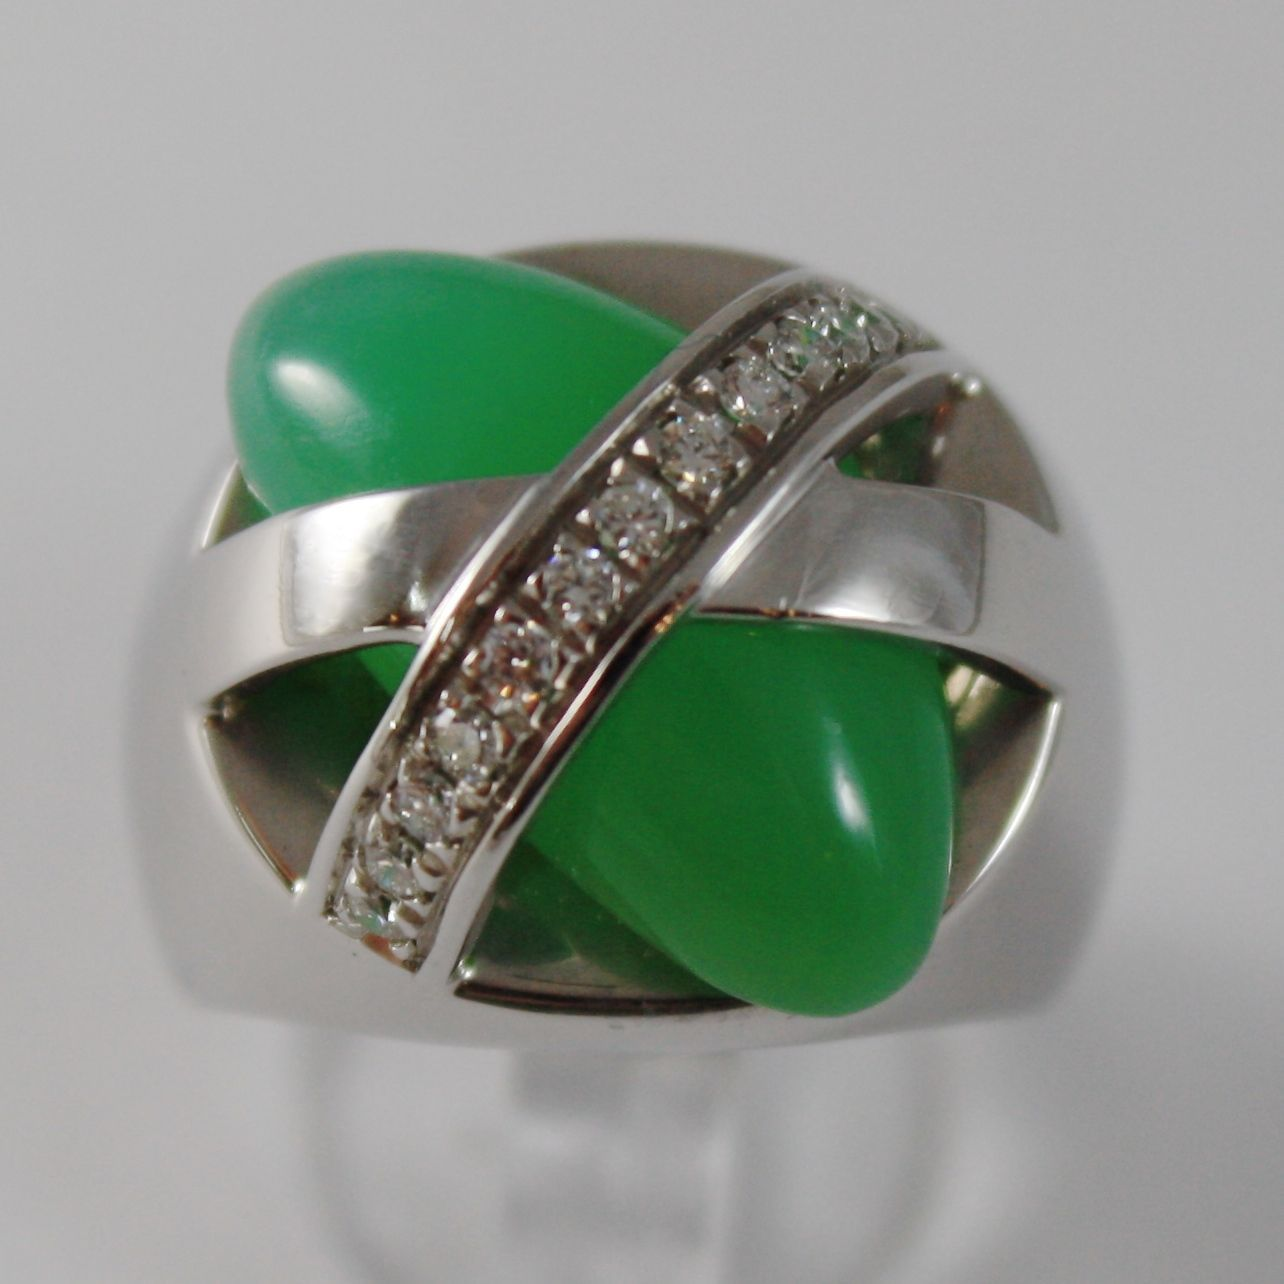 18K WHITE GOLD BAND RING WITH DIAMONDS AND CANDY GREEN JADE, MADE IN ITALY